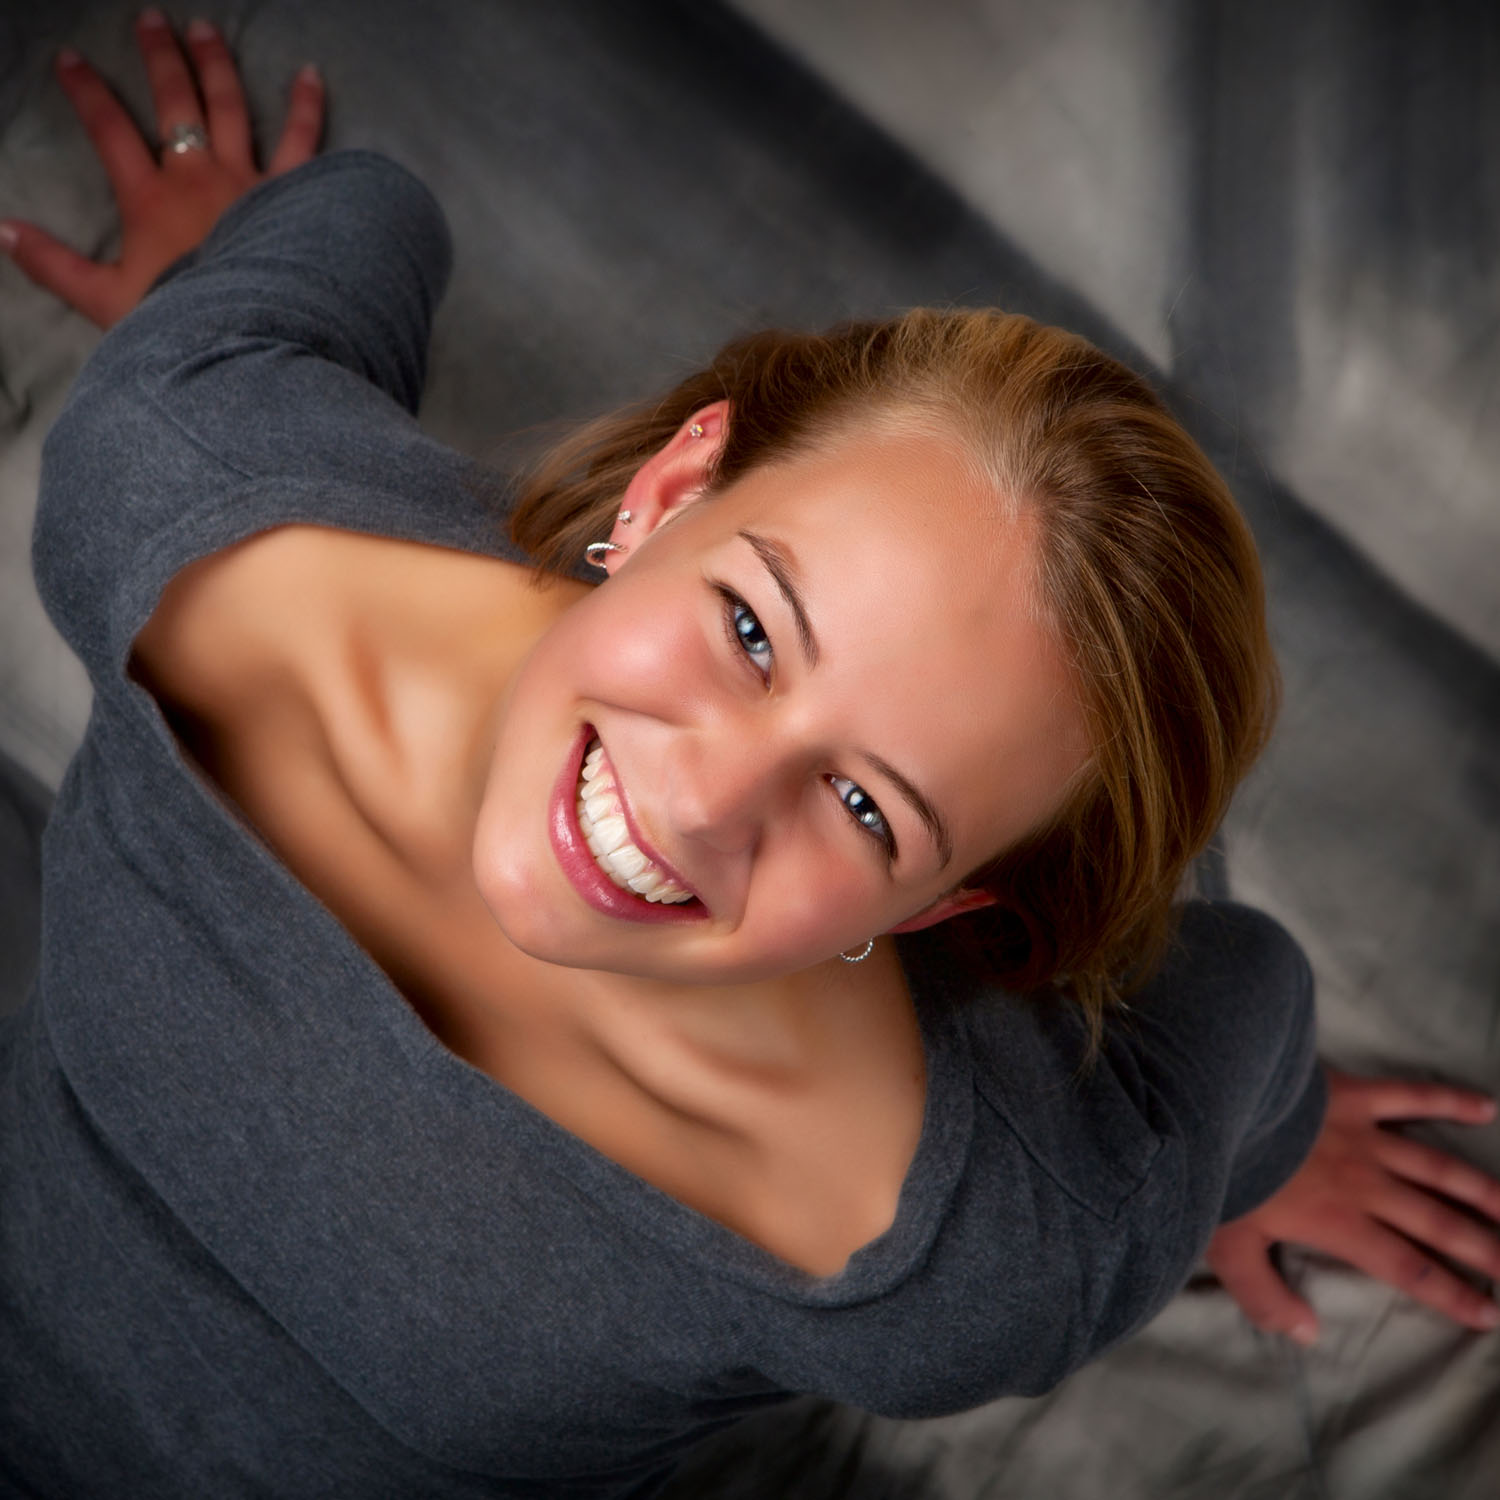 unique angle for senior picture taken straight down in photography studio